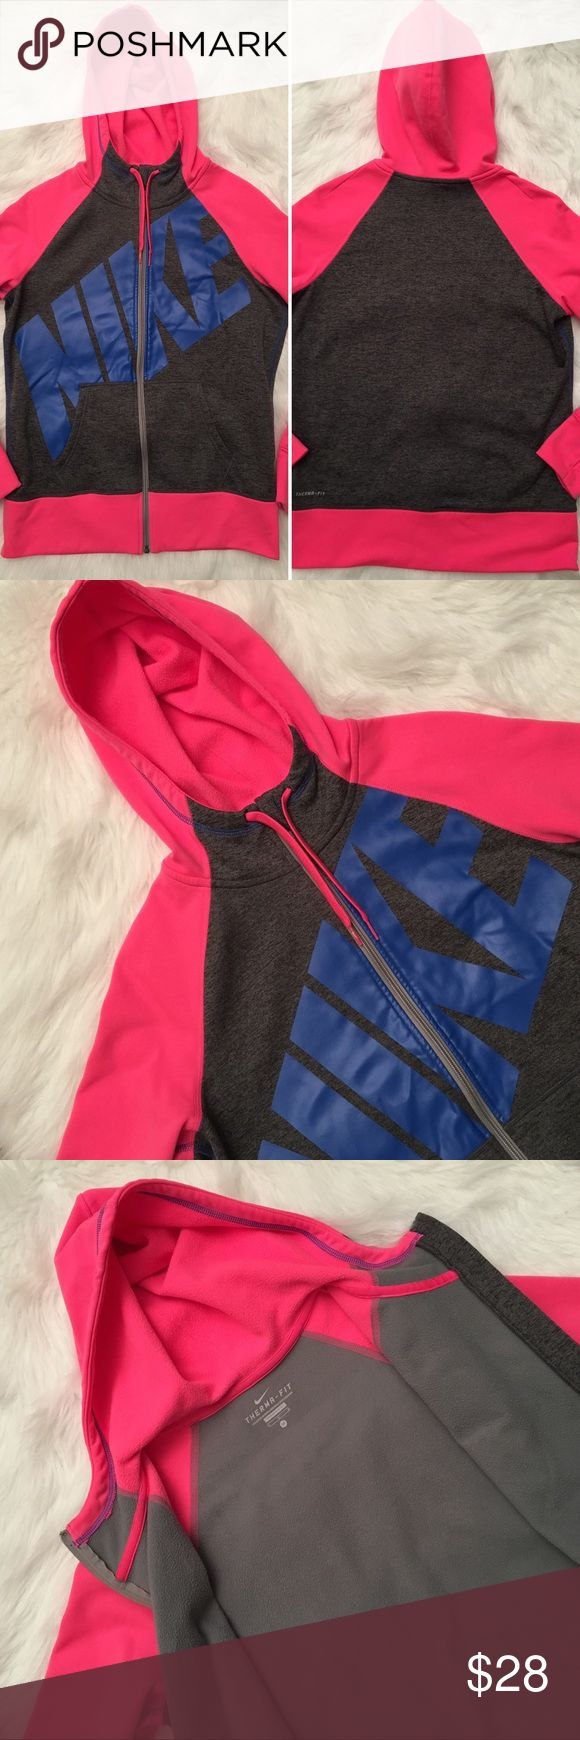 Nike Hoodie Therma Fit Zip Up Women's Medium EUC Nike Therma-Fit Zip Up Hoodie in a US Women's Medium. Colors are gray, blue, and pink. In excellent condition! Comes from a pet free/smoke free home :) Measurements taken laying flat:  Pit to pit: 21 inches Neck to bottom: 26 inches Sleeve length: 24 inches Nike Tops Sweatshirts & Hoodies